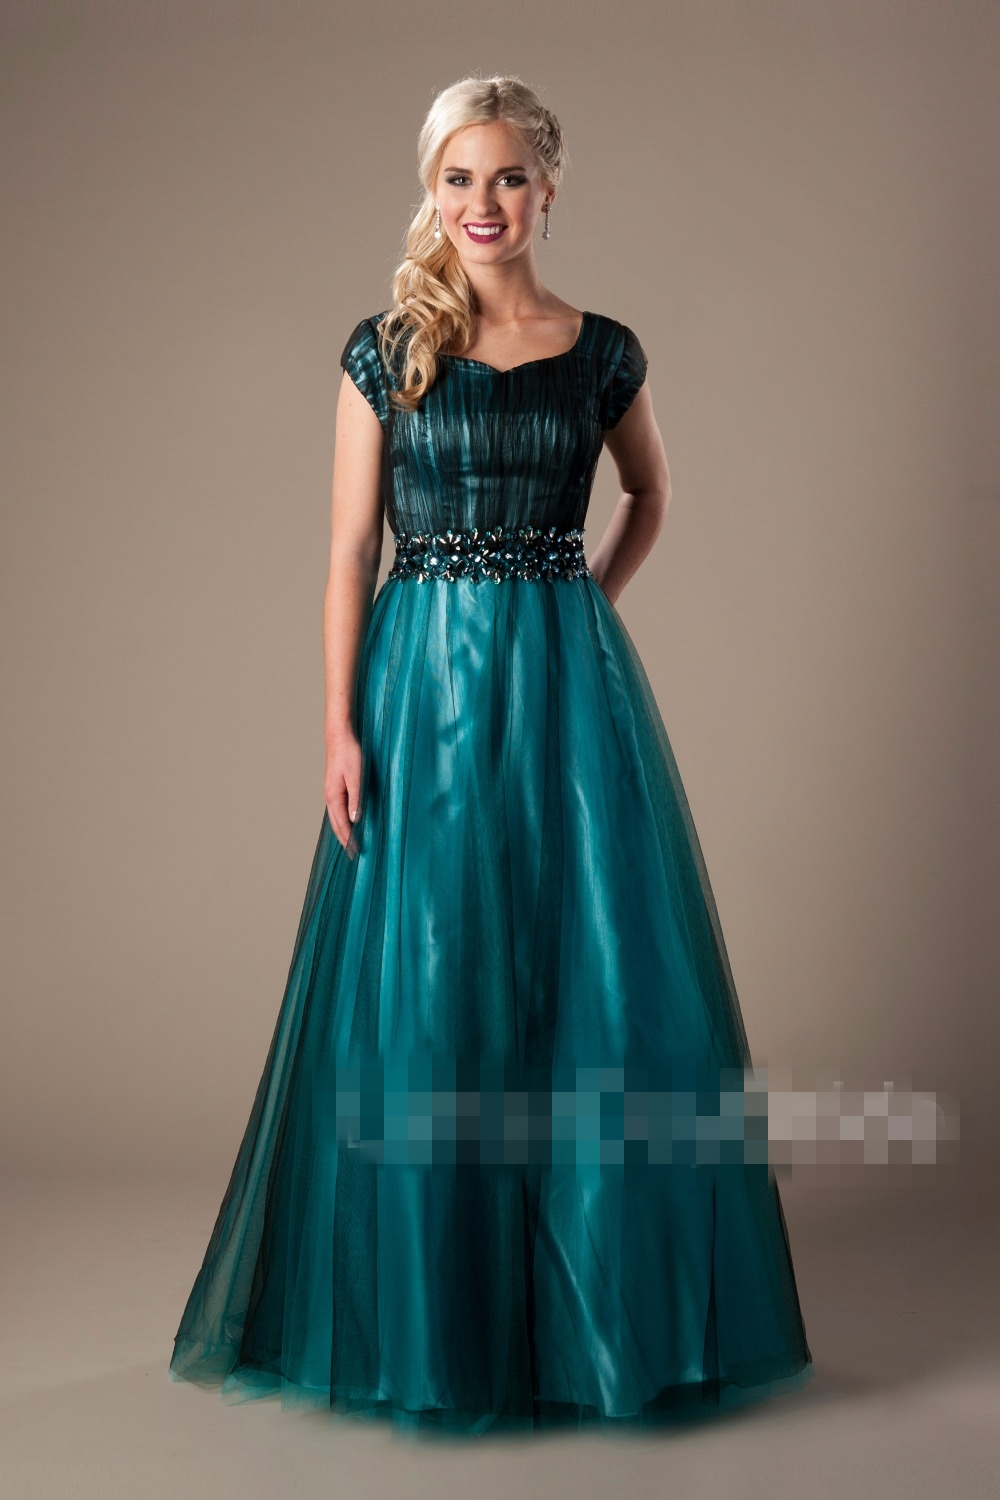 Luxury Emo Prom Dress Pictures - Womens Dresses & Gowns Collections ...